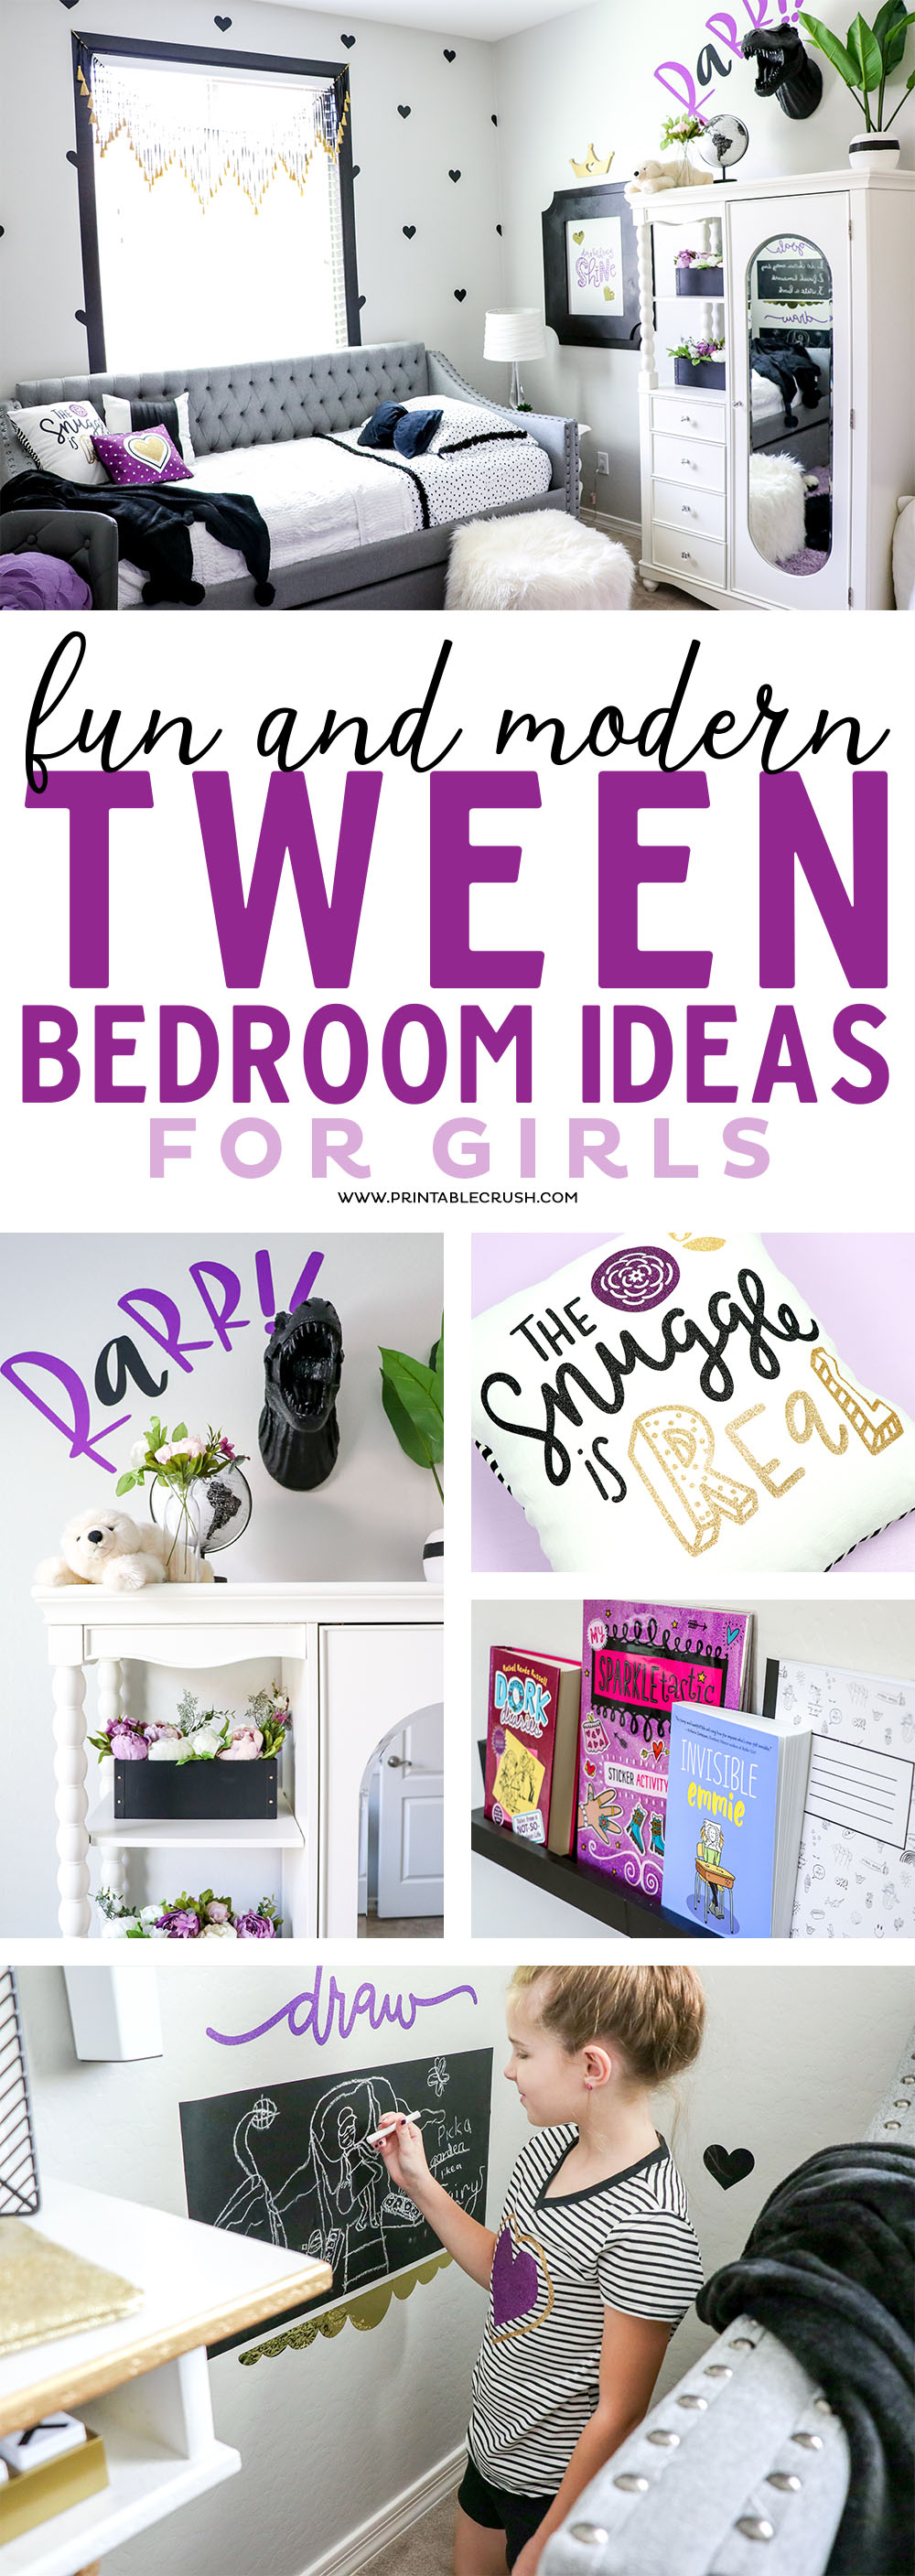 You will LOVE this modern Tween Girls Room design! Plenty of decor ideas to decorate your own creative space. #tweenbedroom #tweenroomsideas #tweenroom #kidroomideas #homedecor